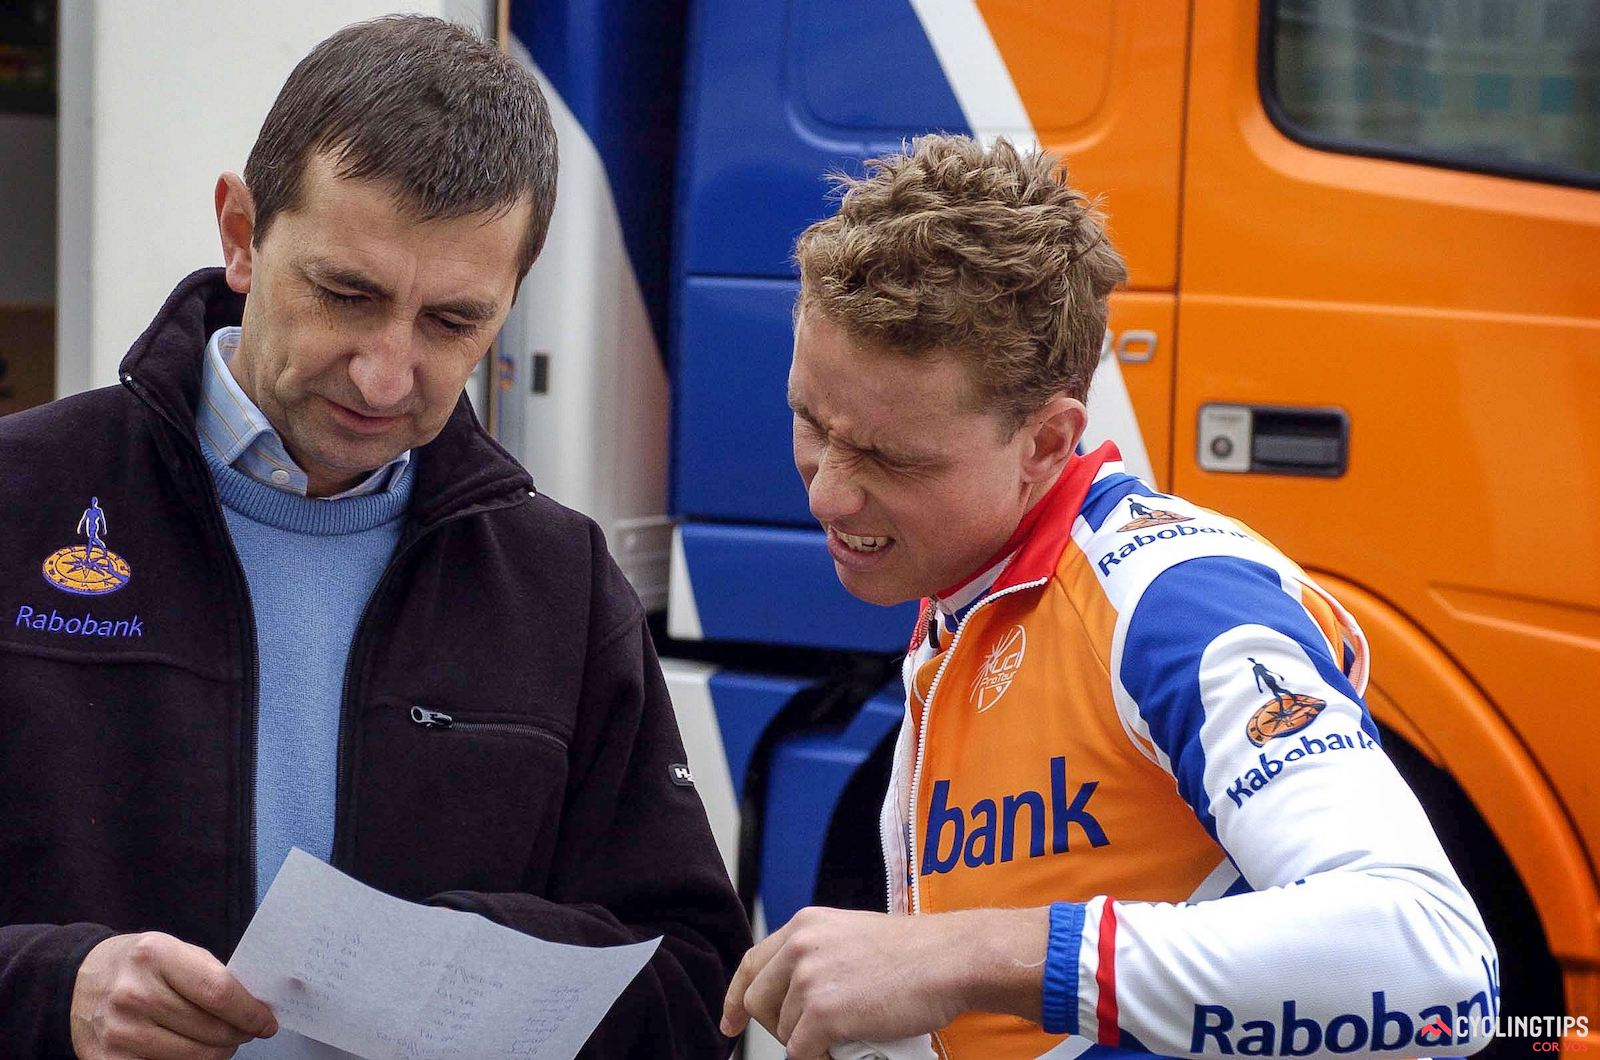 Geert Leinders and Michael Boogerd, Rabobank training camp, January 2005. Photo: Cor Vos.